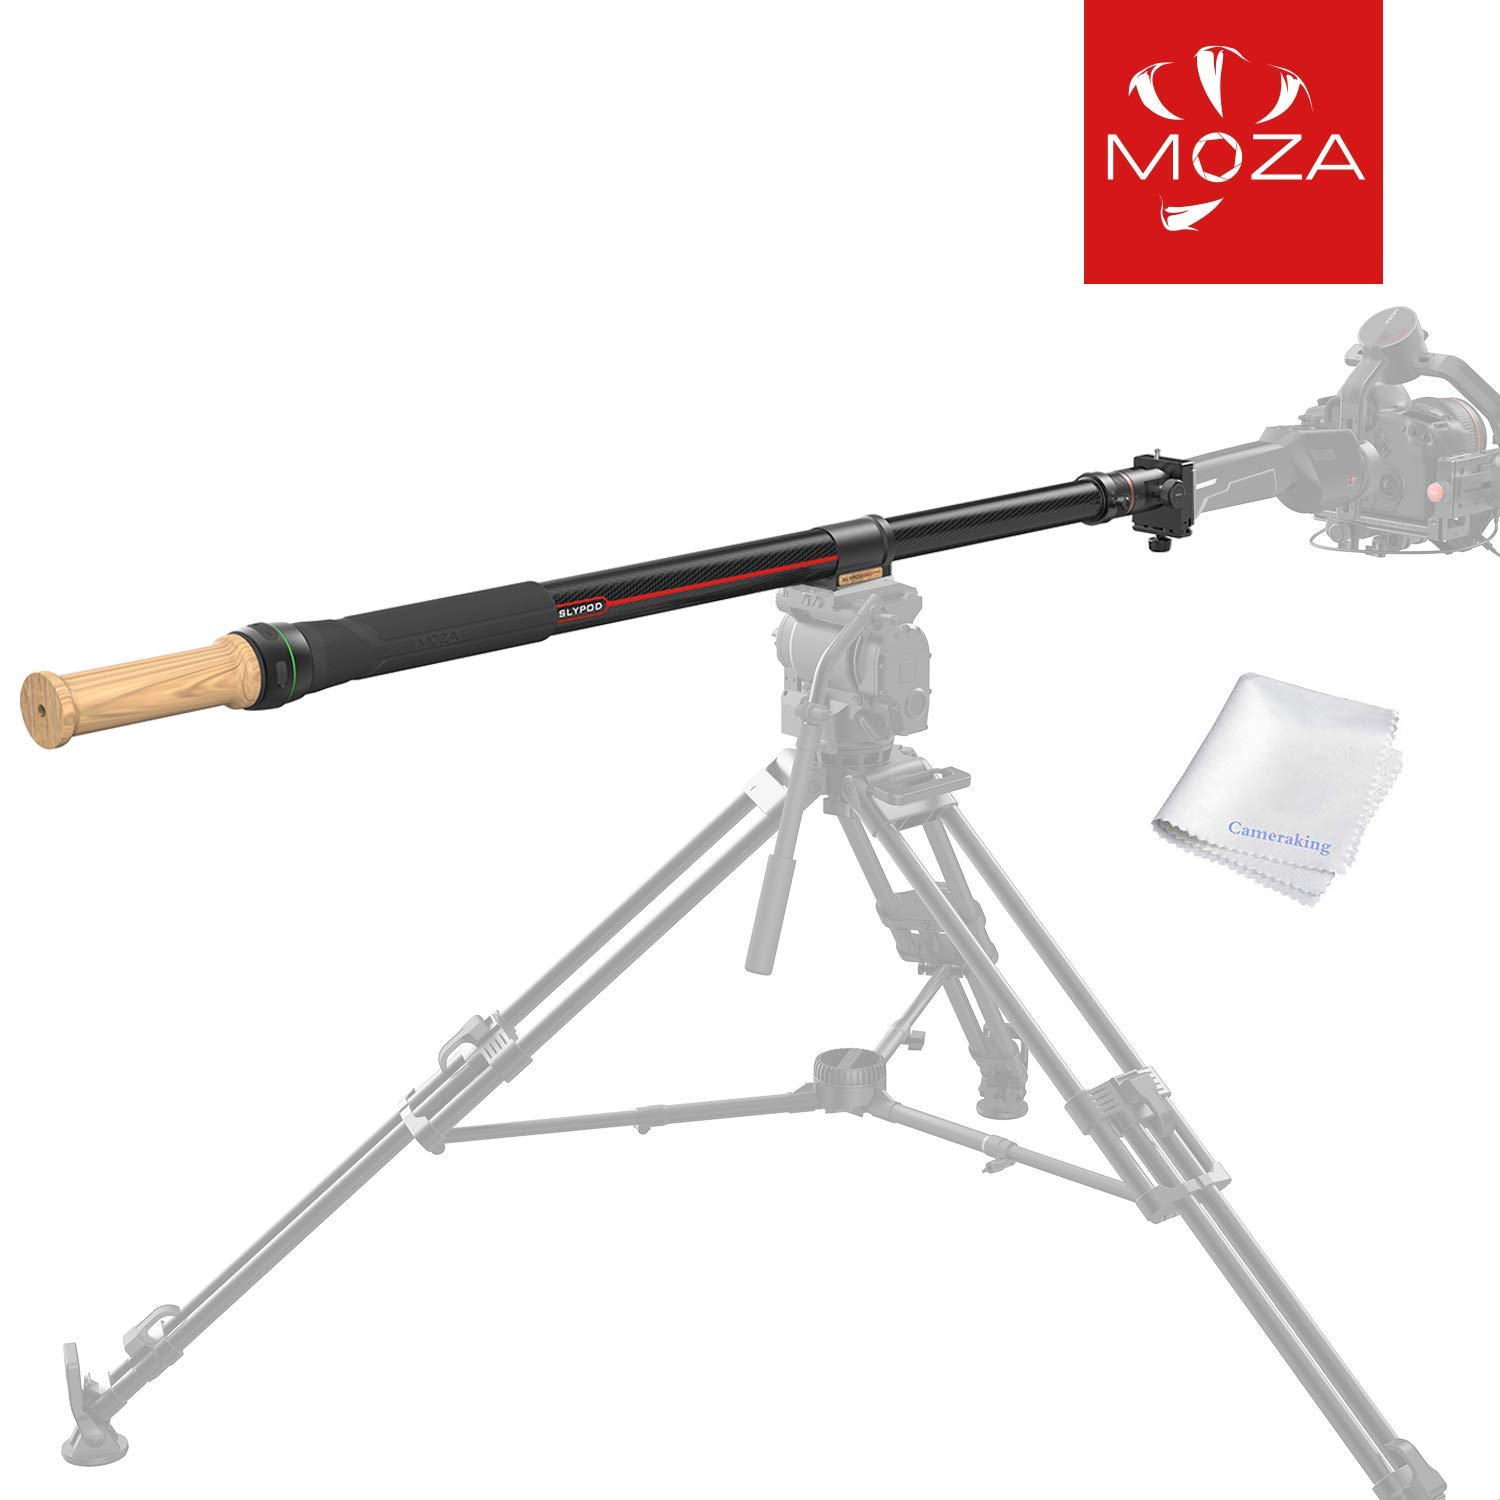 MOZA Slypod 2-in-1 Monopod Slider Motorised Accurate Position Speed Control Advanced Shooting Modes Precision Power Easy Assemble Quality Craftsmanship High Capacity for More Cinematic Possibilities by MOZA